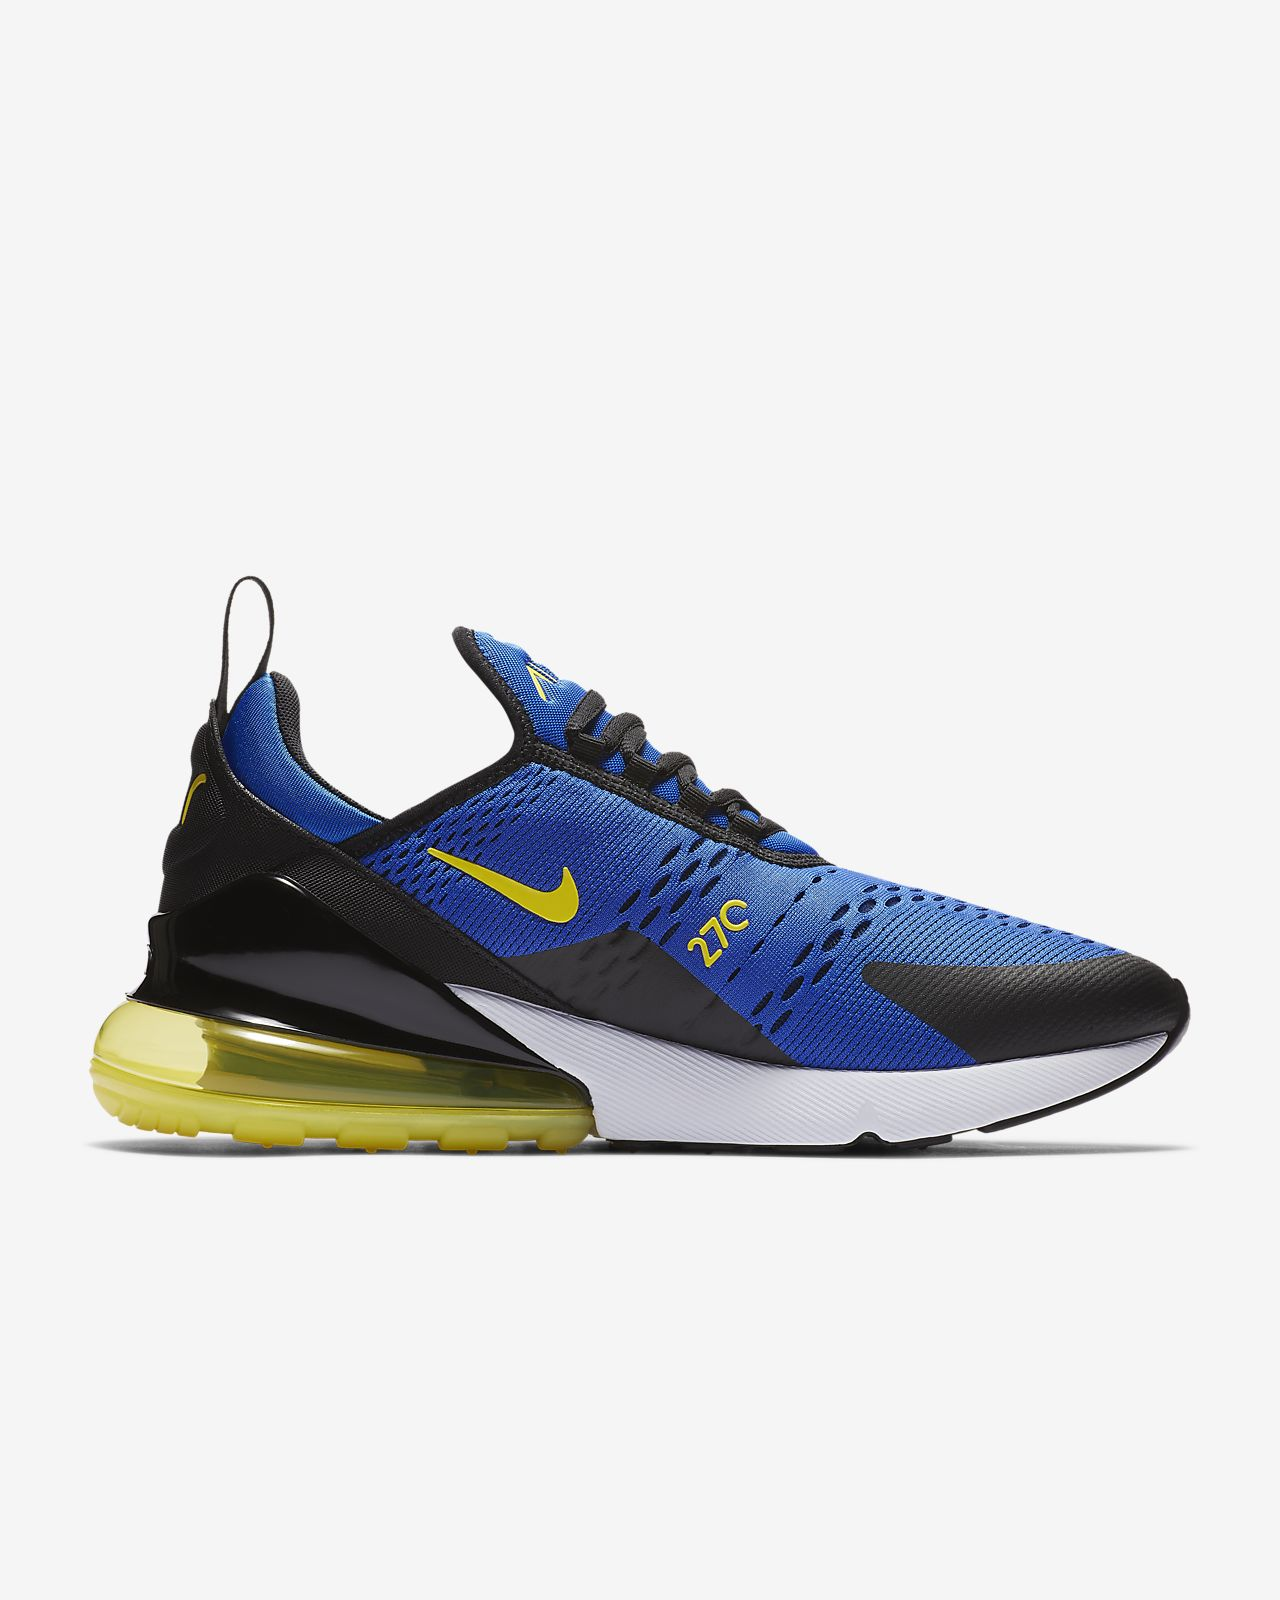 best authentic 946ec f9230 czech nike lab air max 270 svart royal blå 08f2c a6449